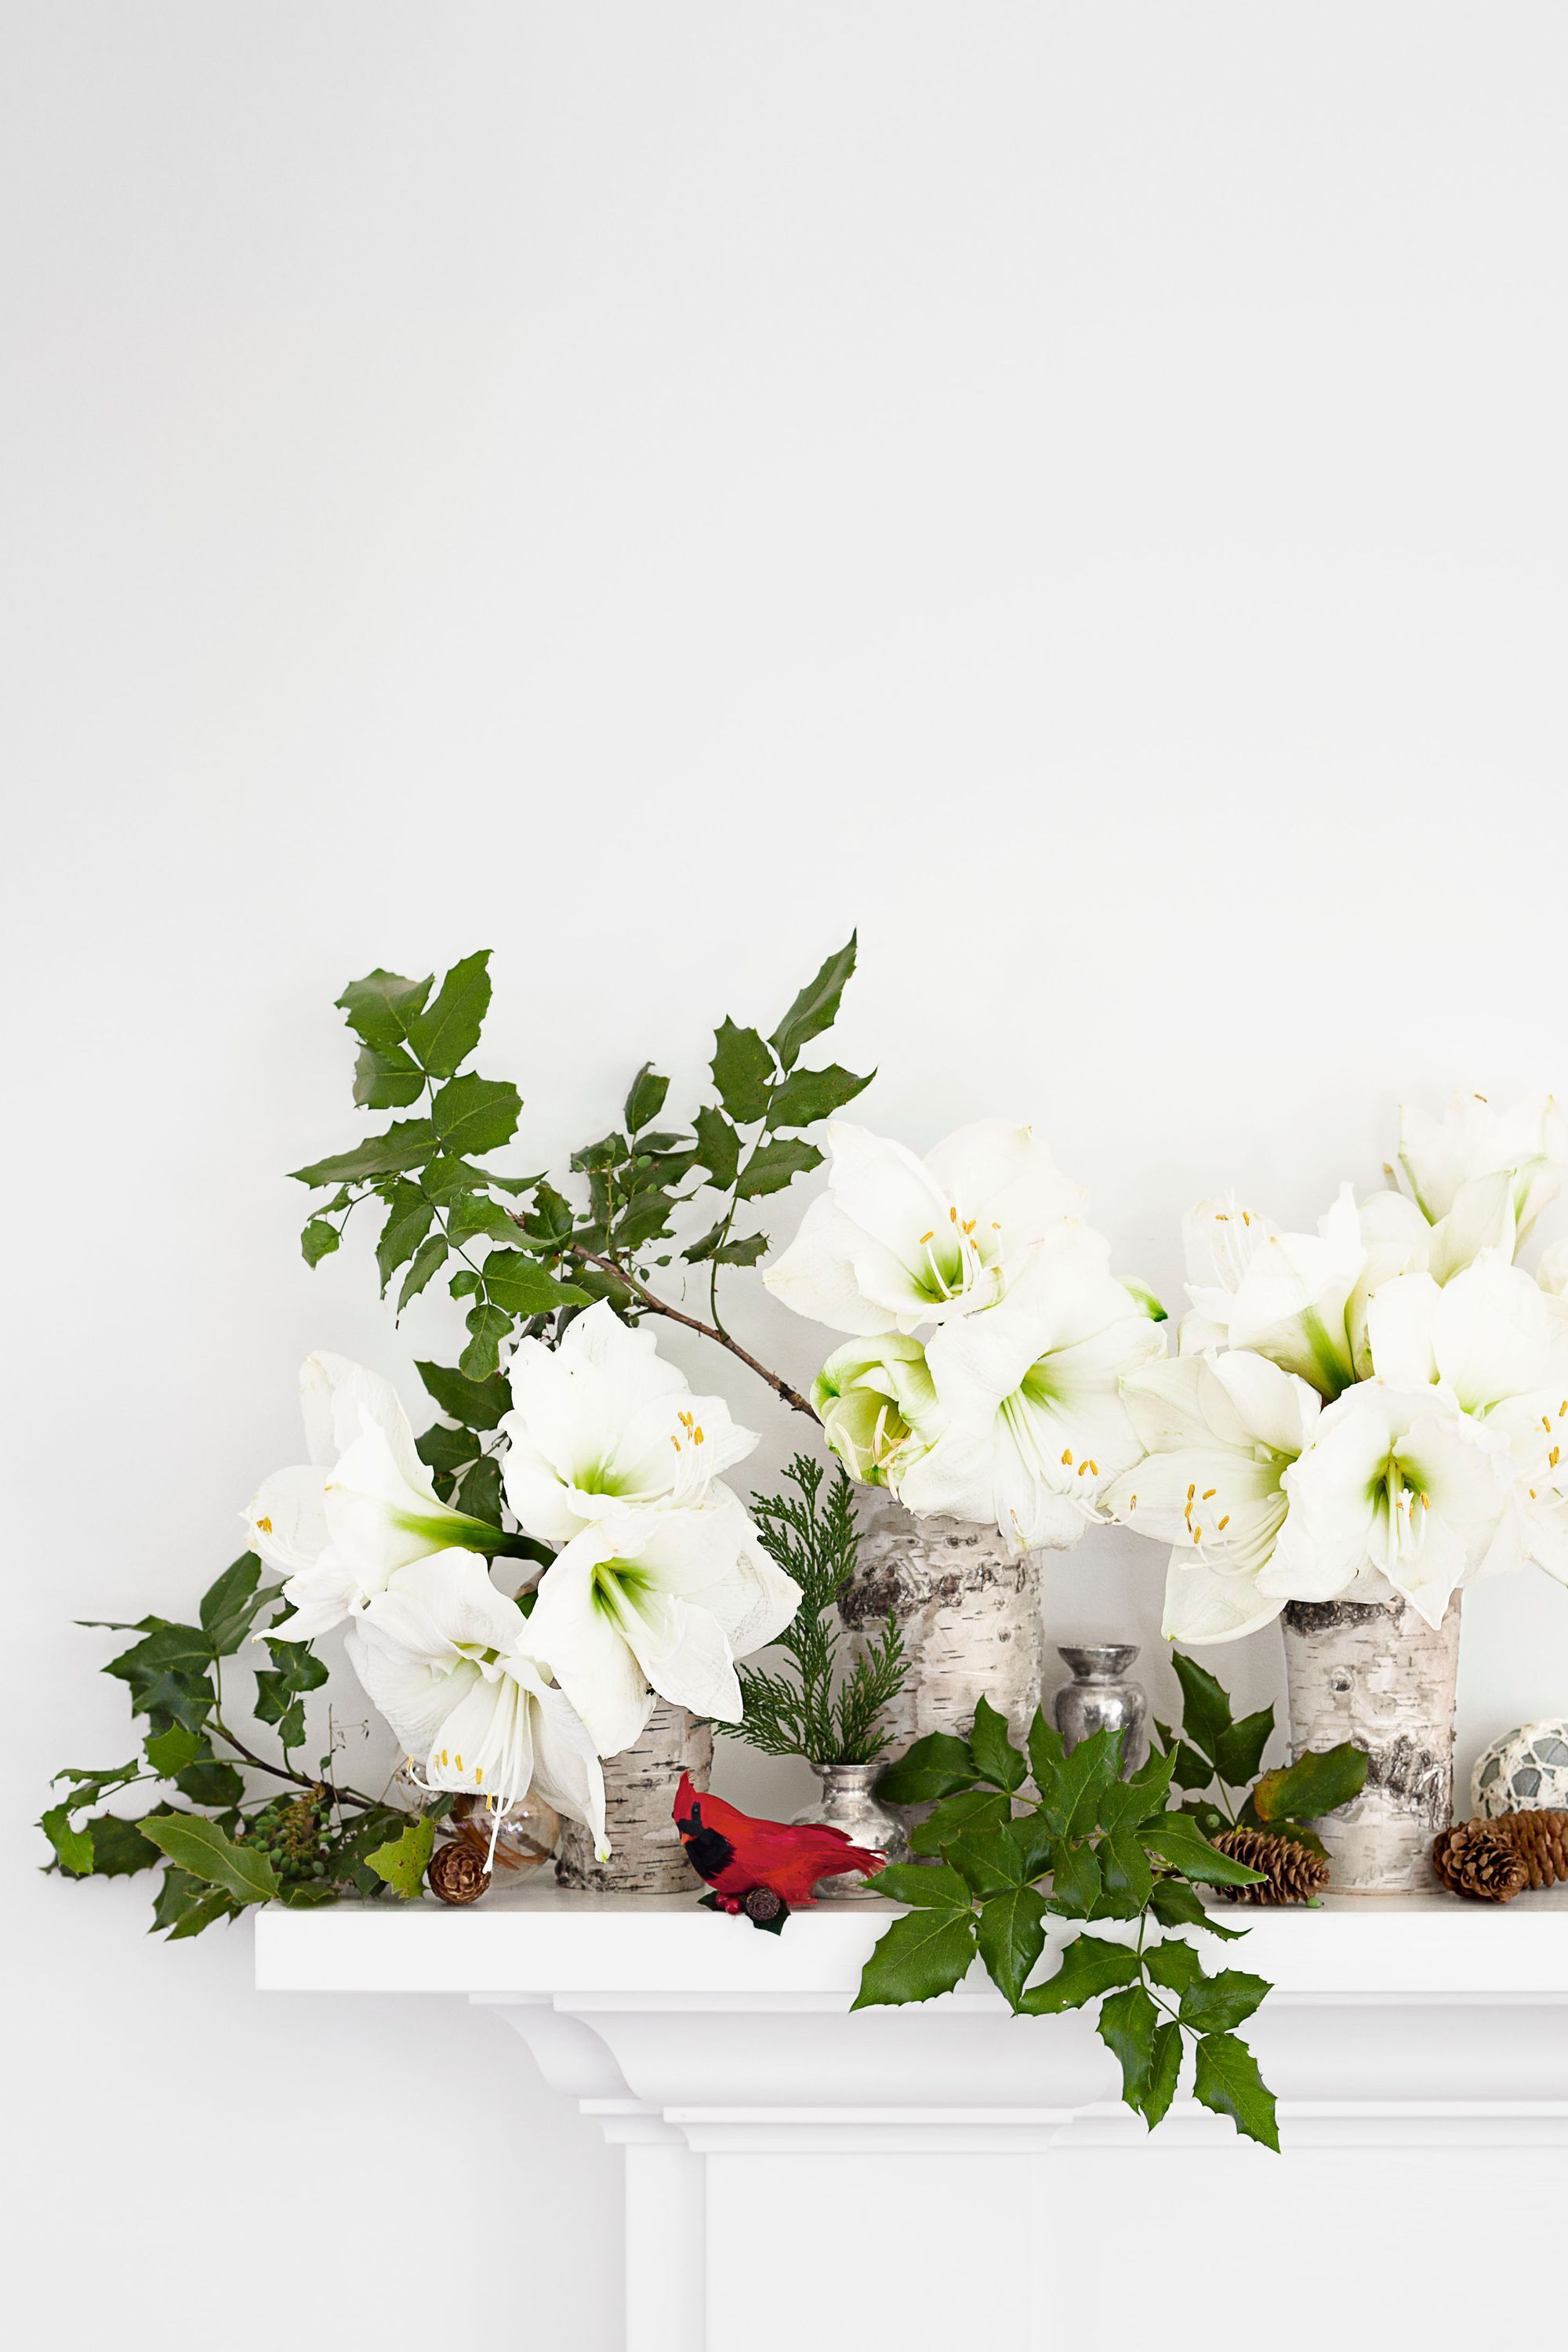 10 Best Christmas Plants How To Care For Christmas Flowers